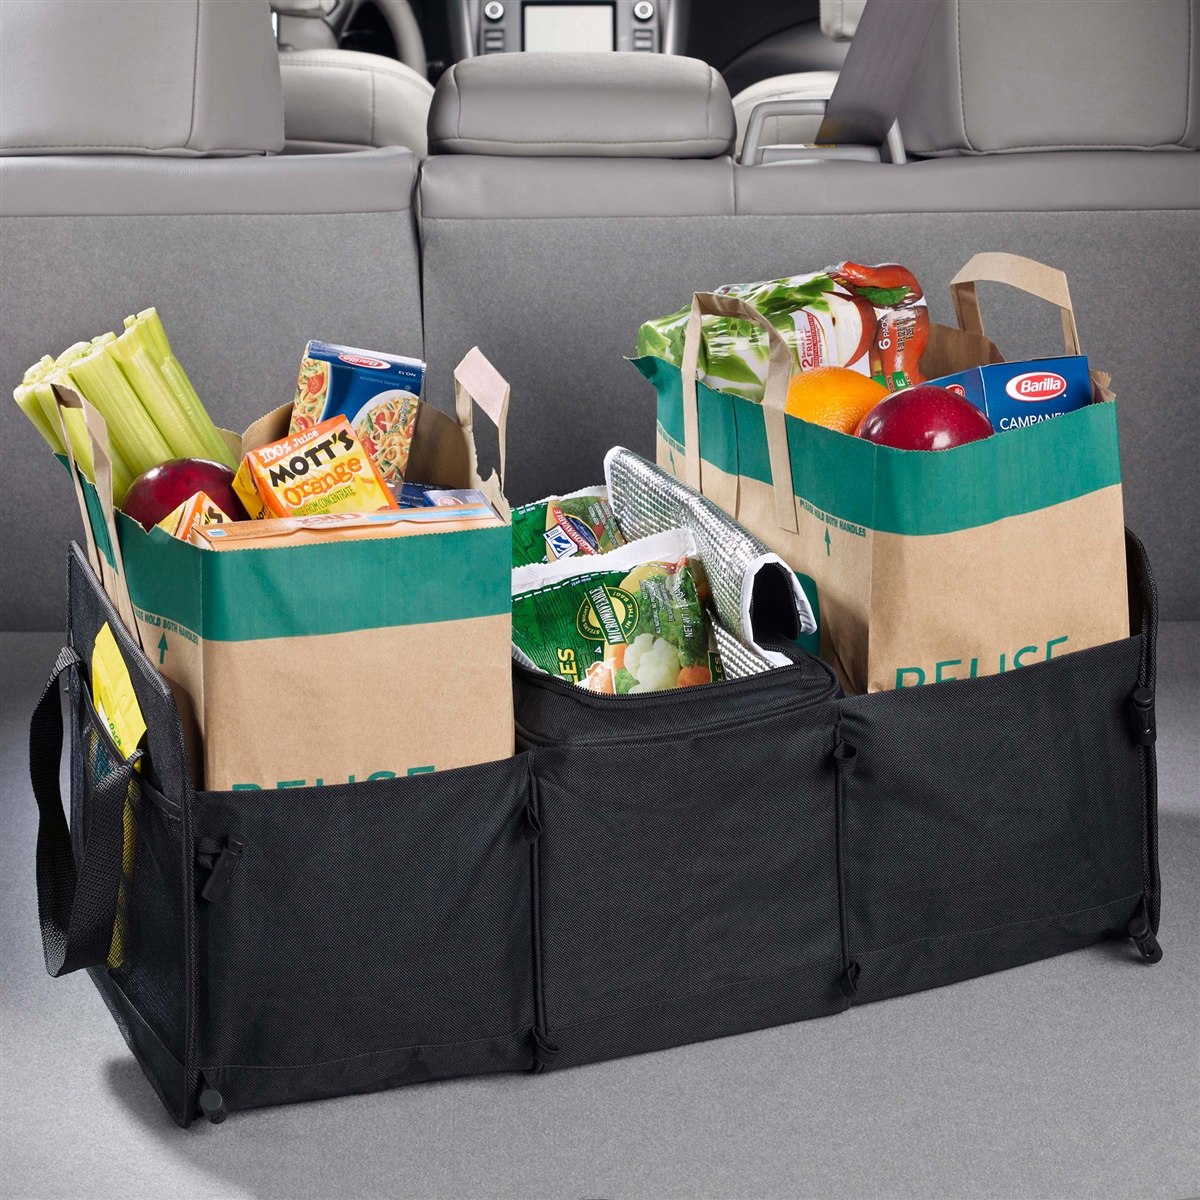 Cool Nride Car Trunk Organizer With Cooler Collapsible Trunk